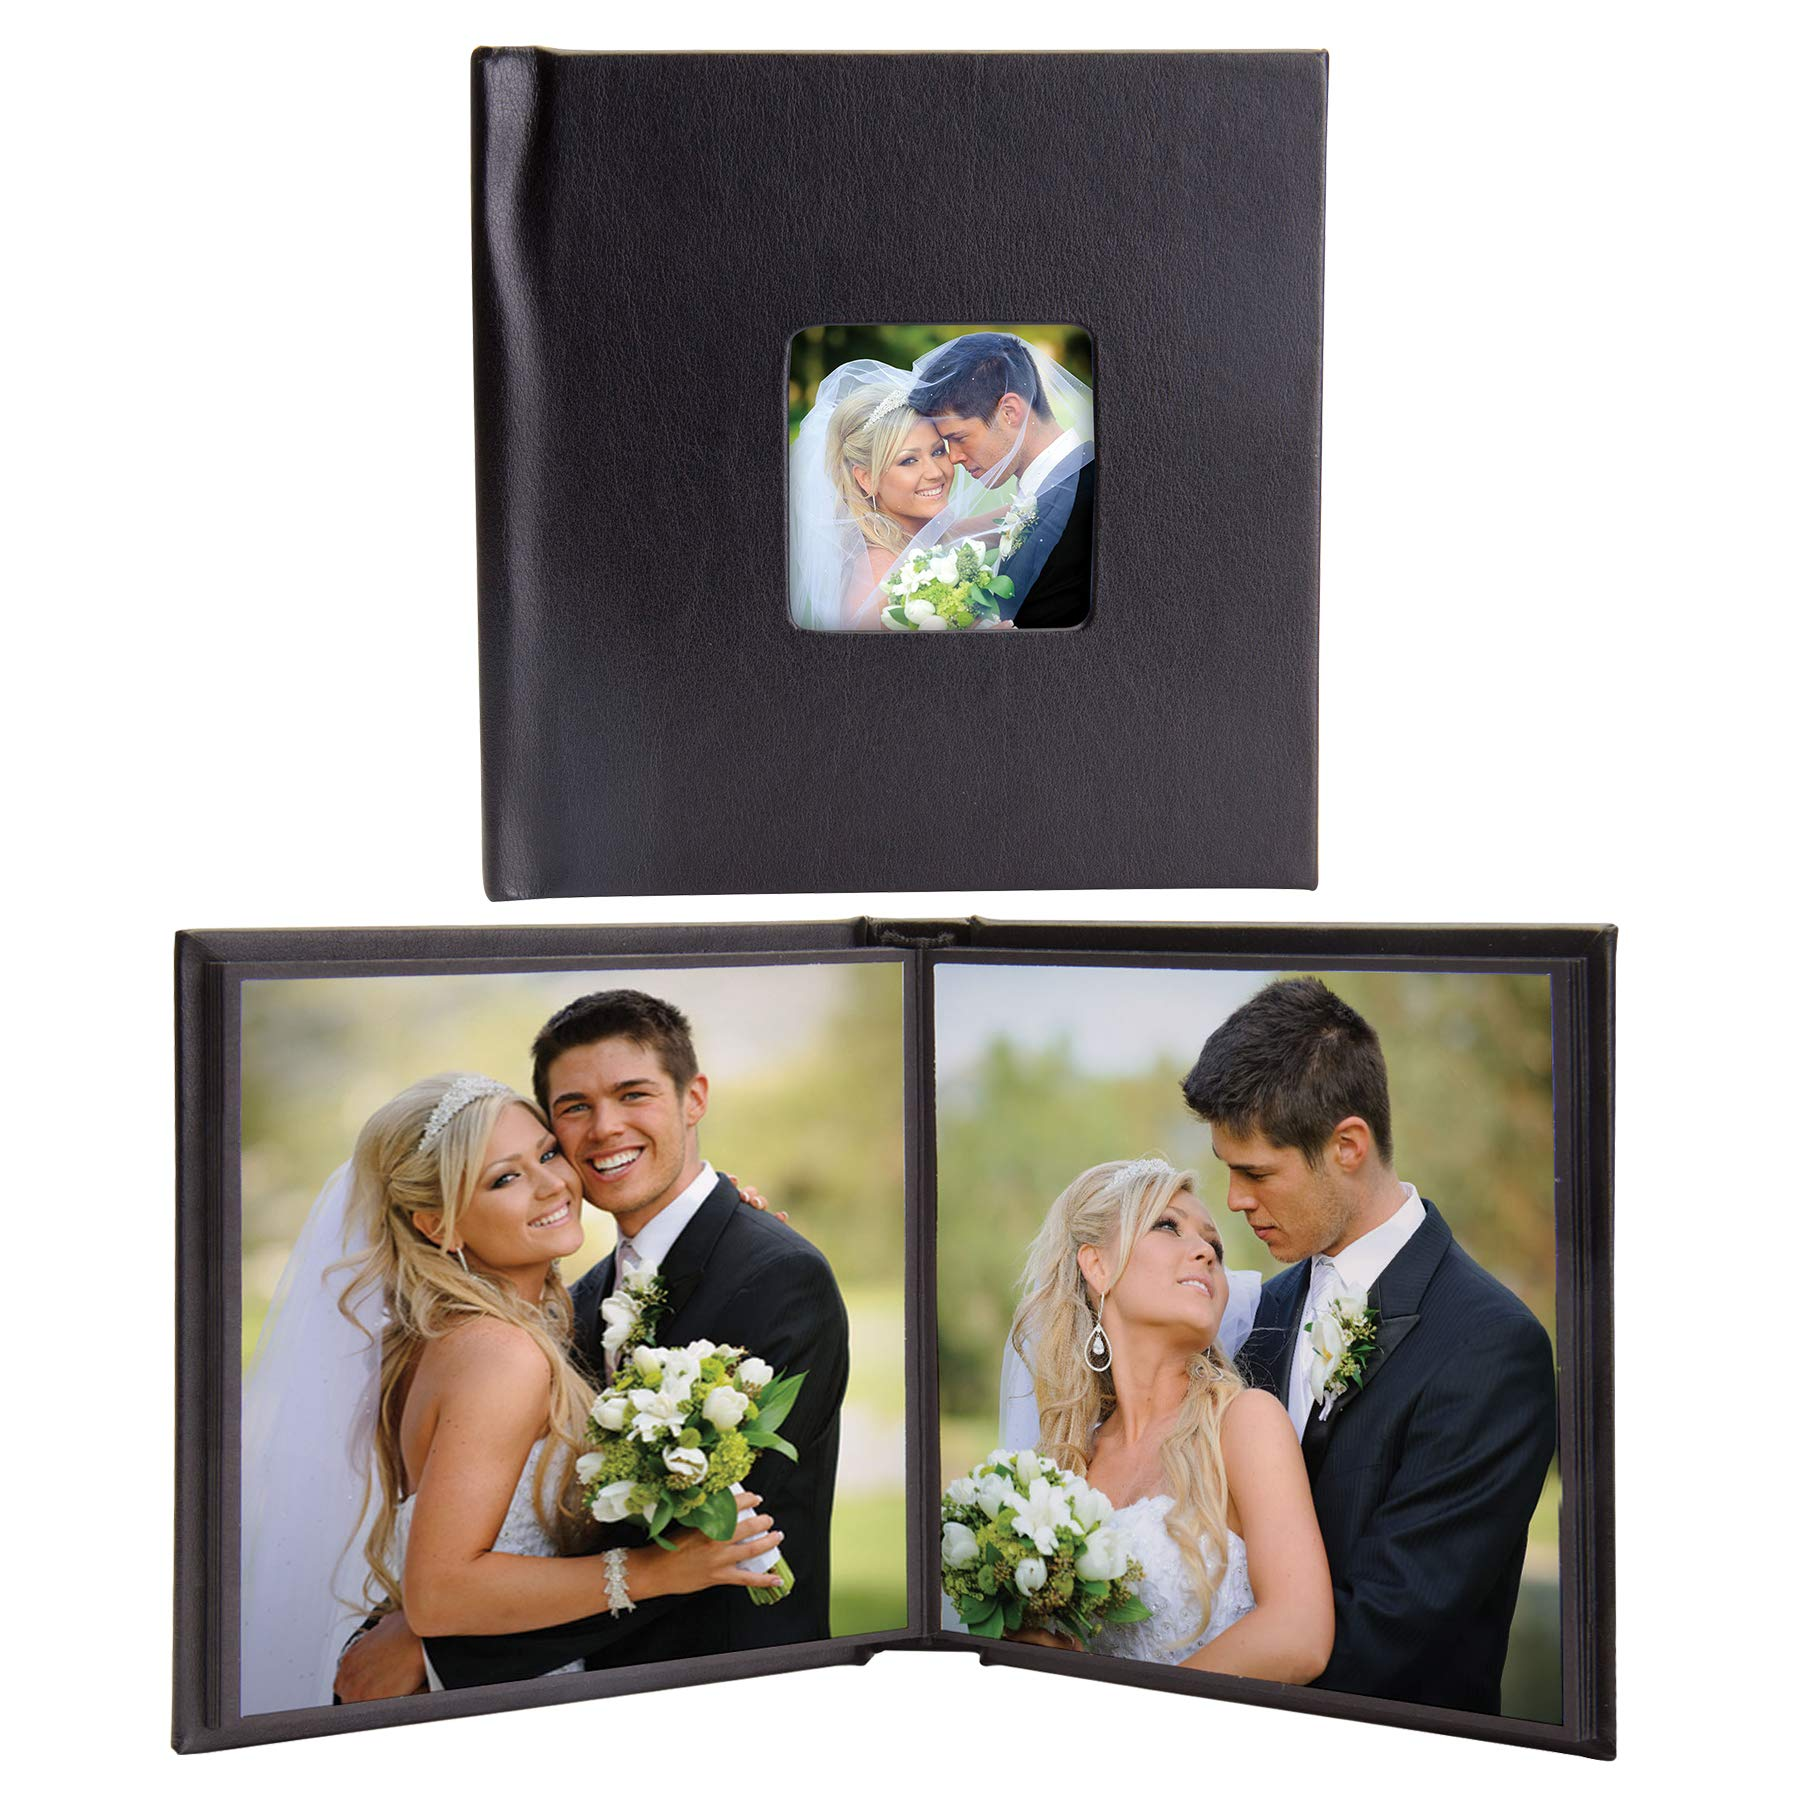 5x5 Square Self-Stick Photo Albums with Cameo Cover - Case of 12 by Neil Enterprises